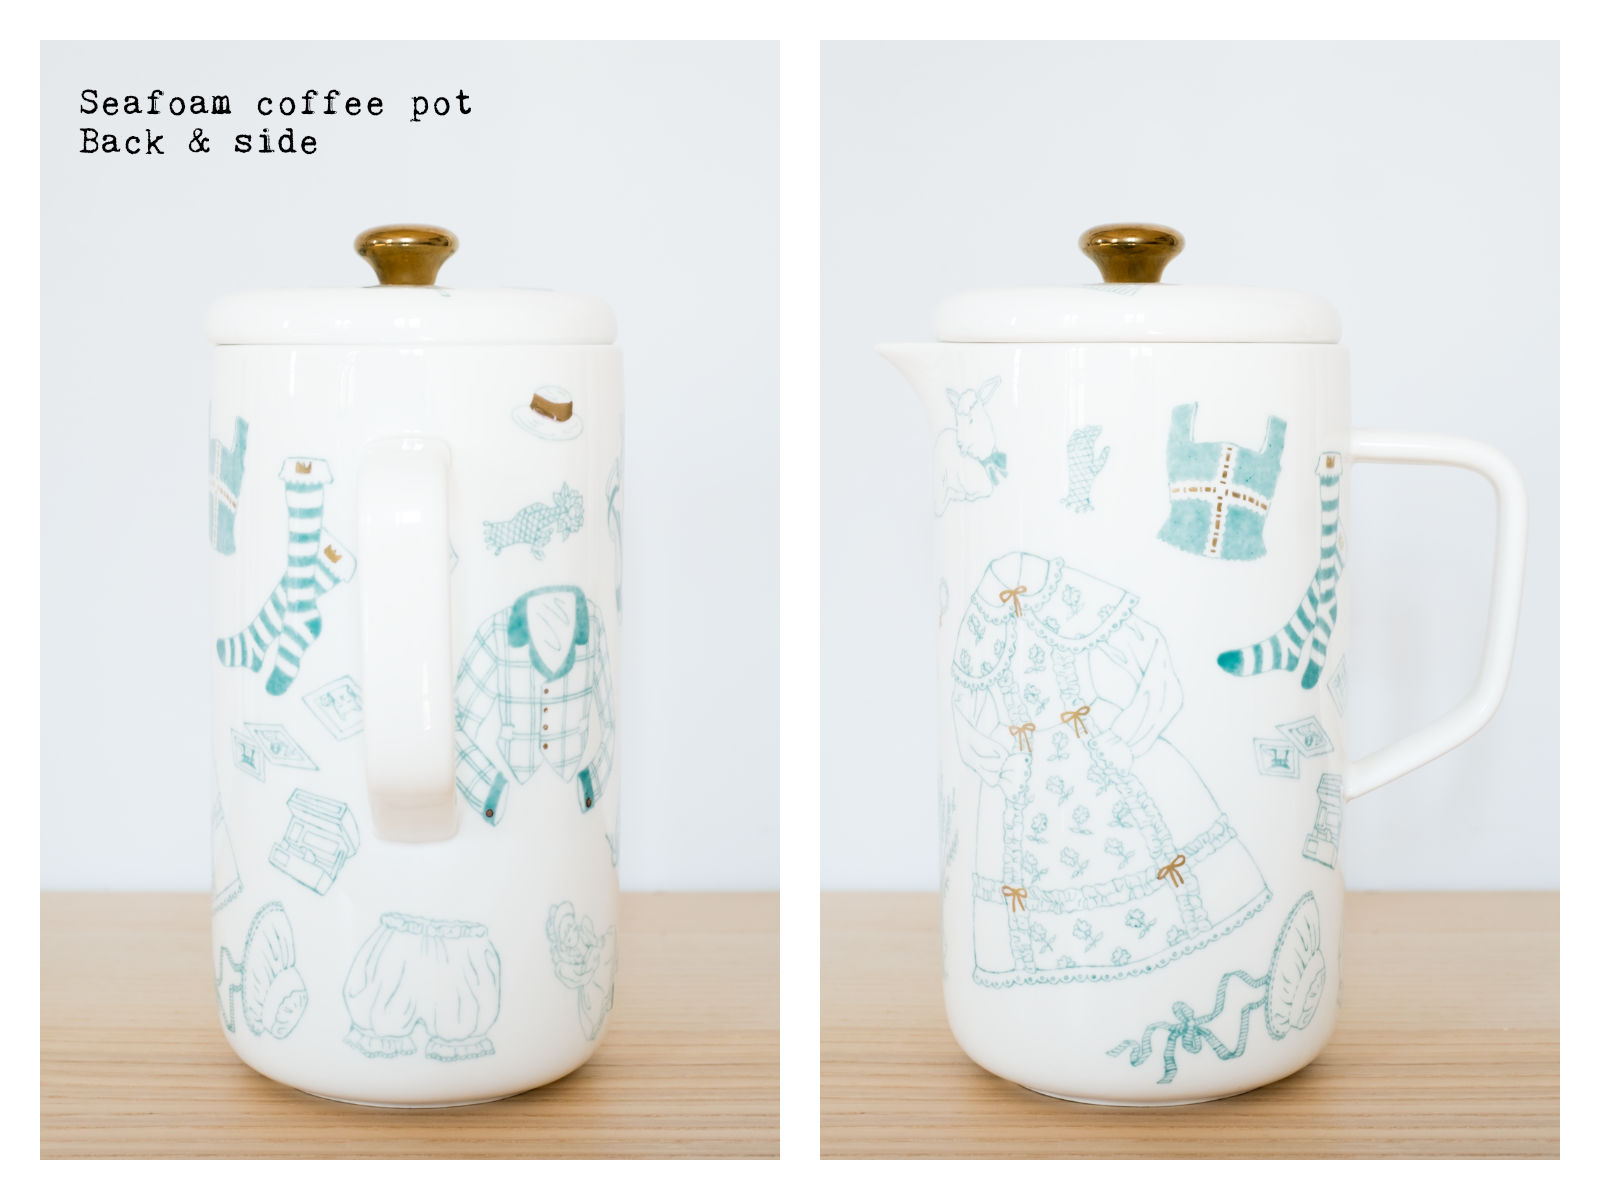 "Back & side of a seafoam coffee pot from ""Oldschool Lolita"", a collection of painted porcelains by messalyn."